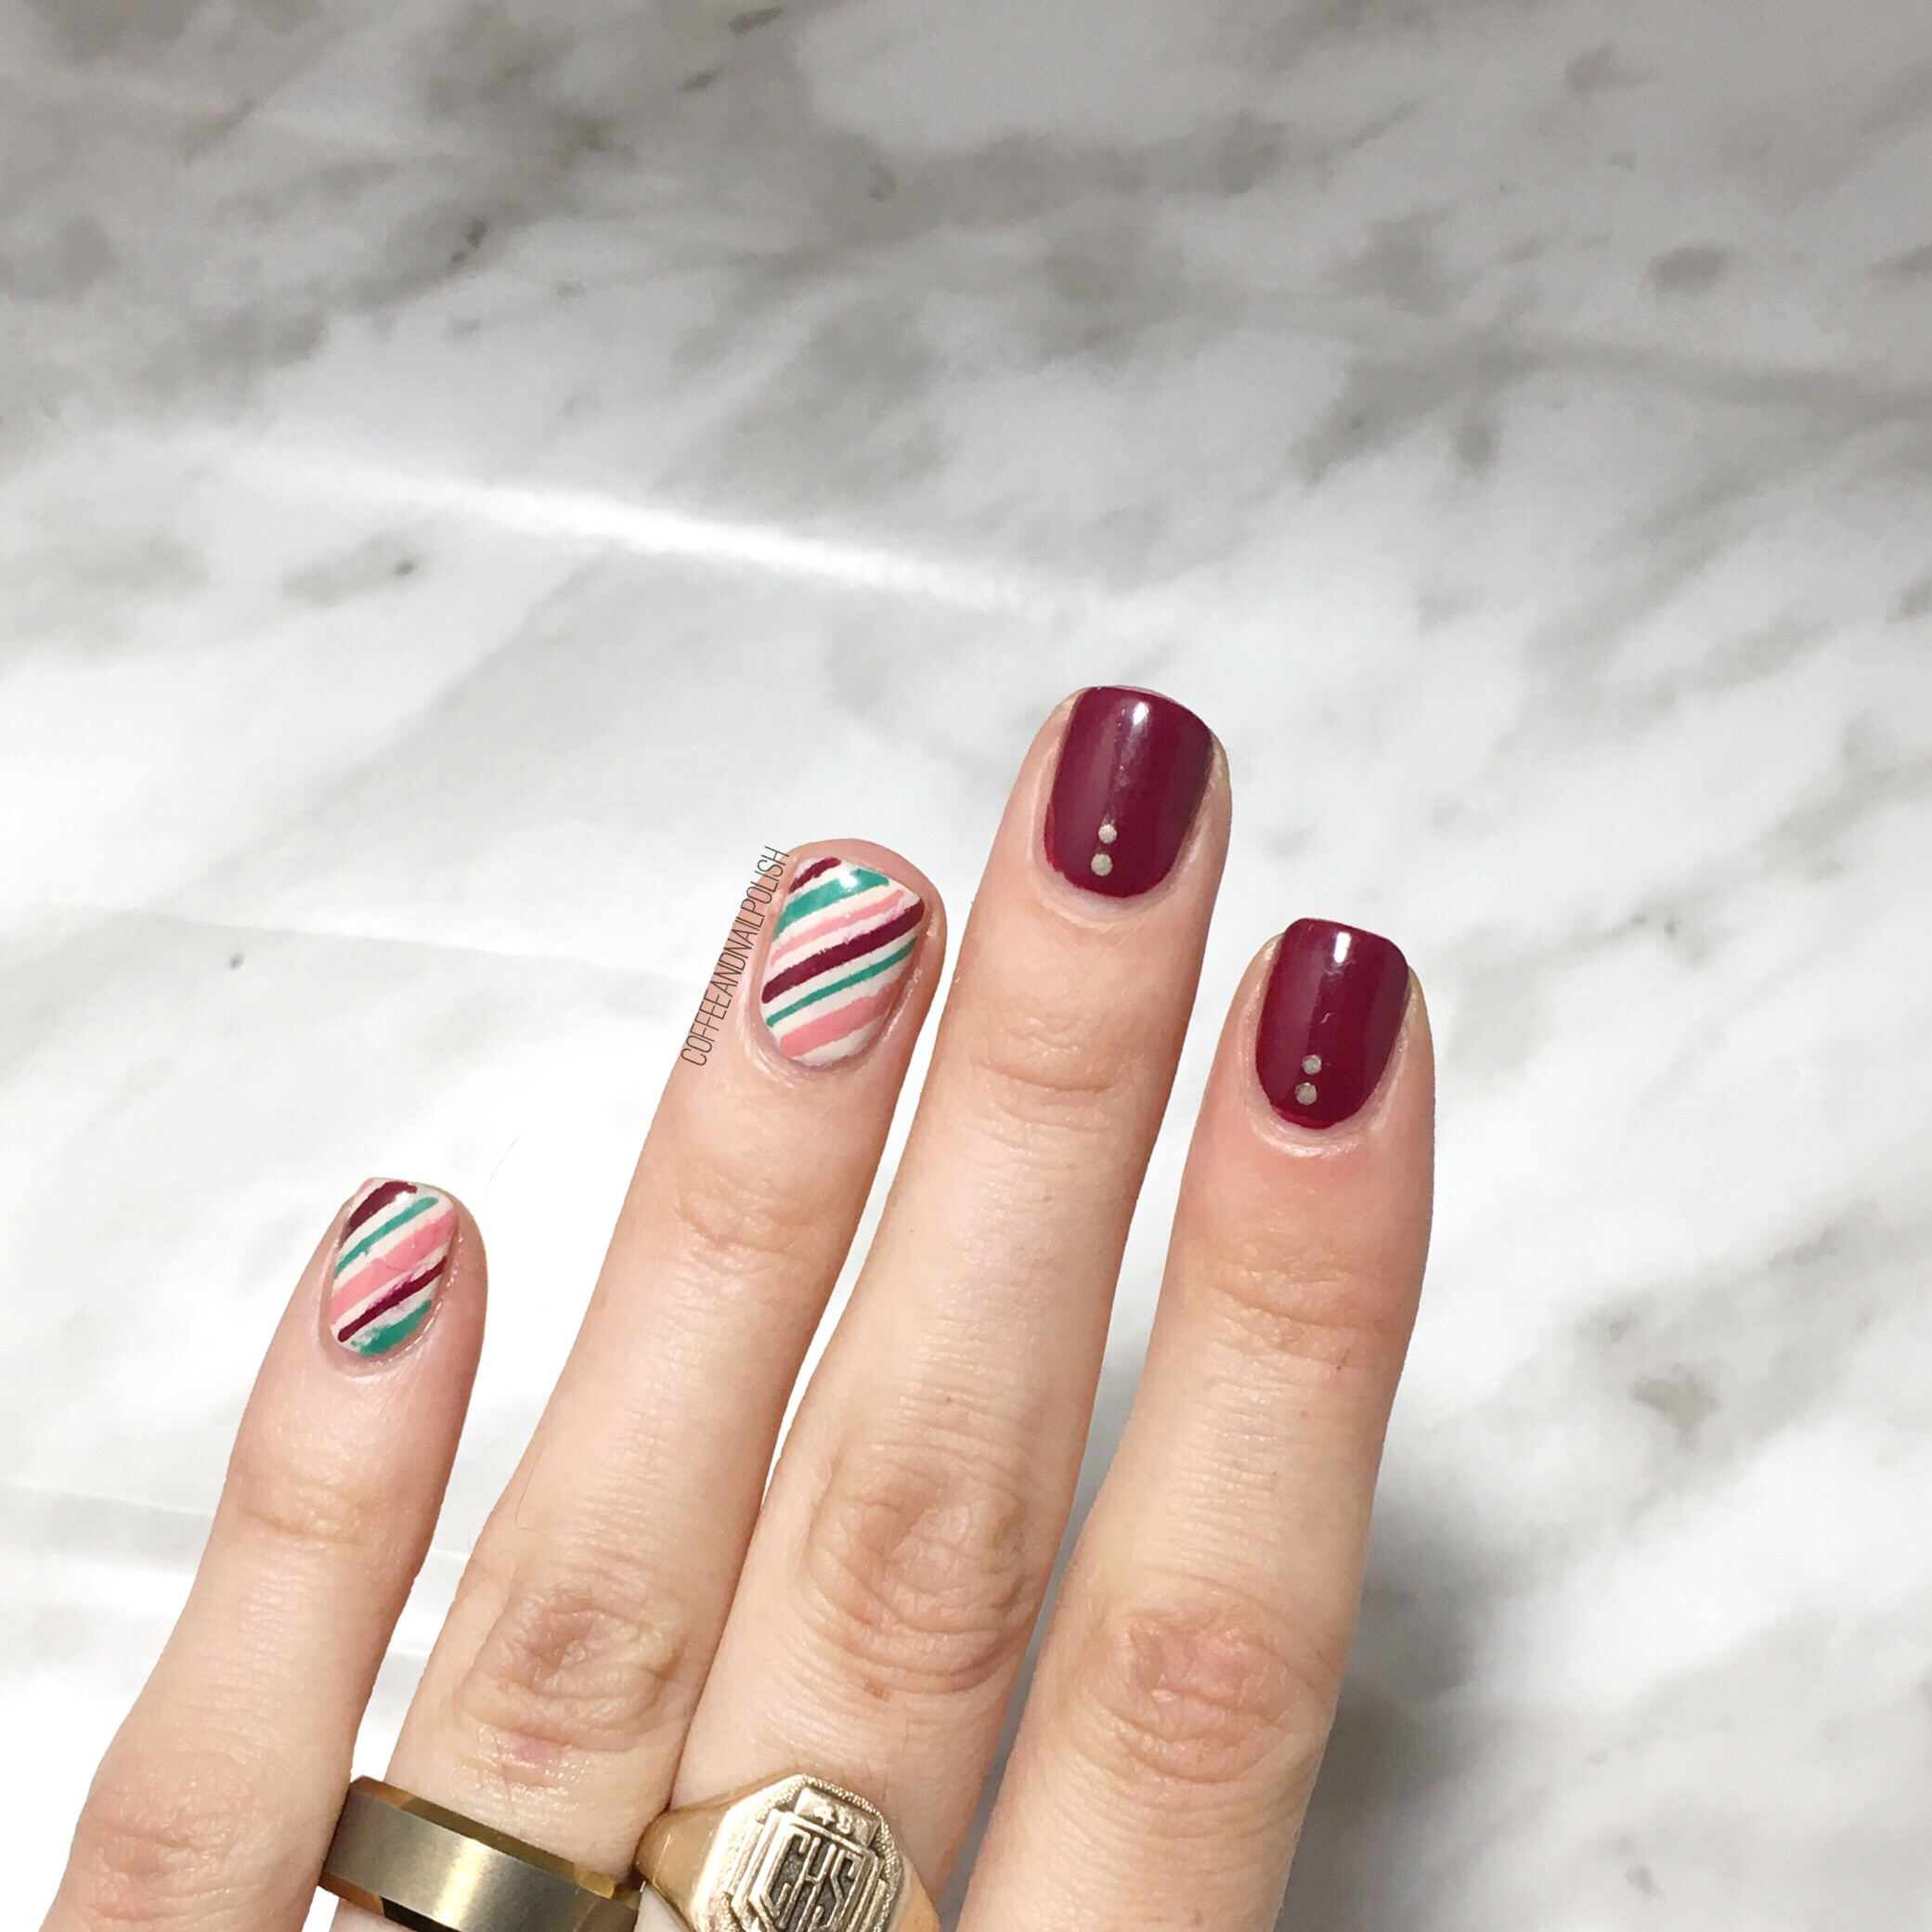 Its Officially December Now That Means Time For Some Serious Christmas Y Nail Spam First Up These Candy Cane Accent Nails Have Been Sitting